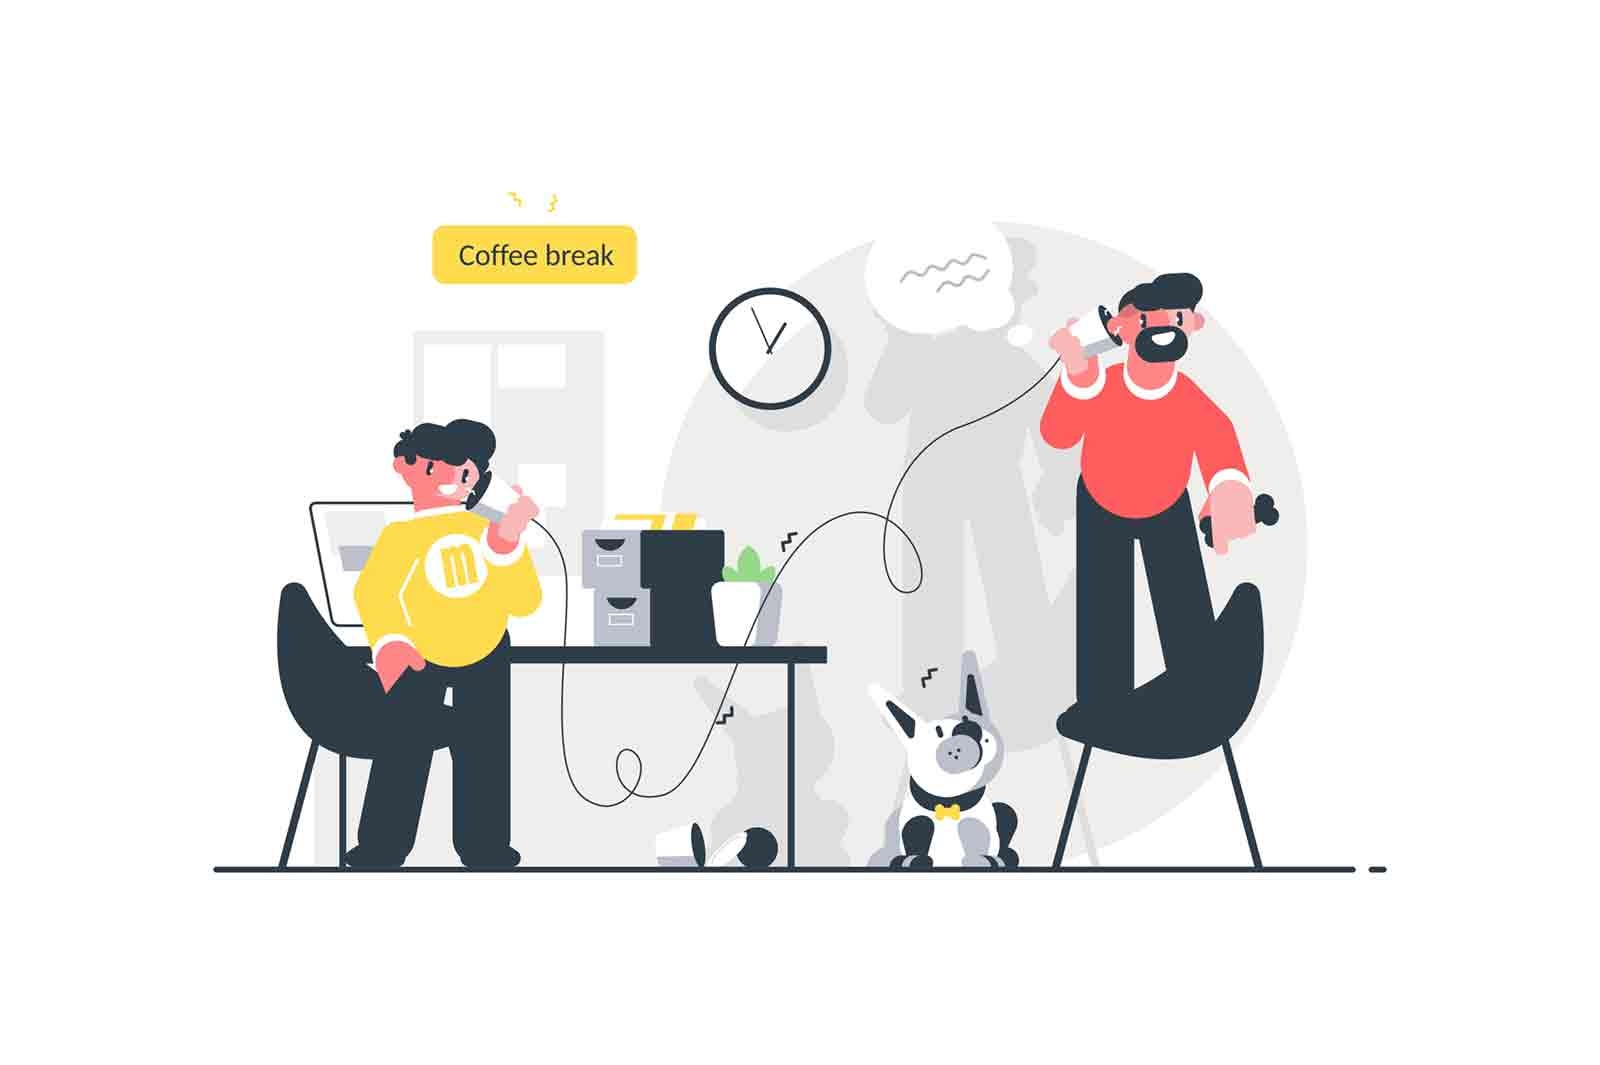 Men speaking on simple phone vector illustration. Colleagues communicating via old telephone and having fun during coffee break in office flat style concept